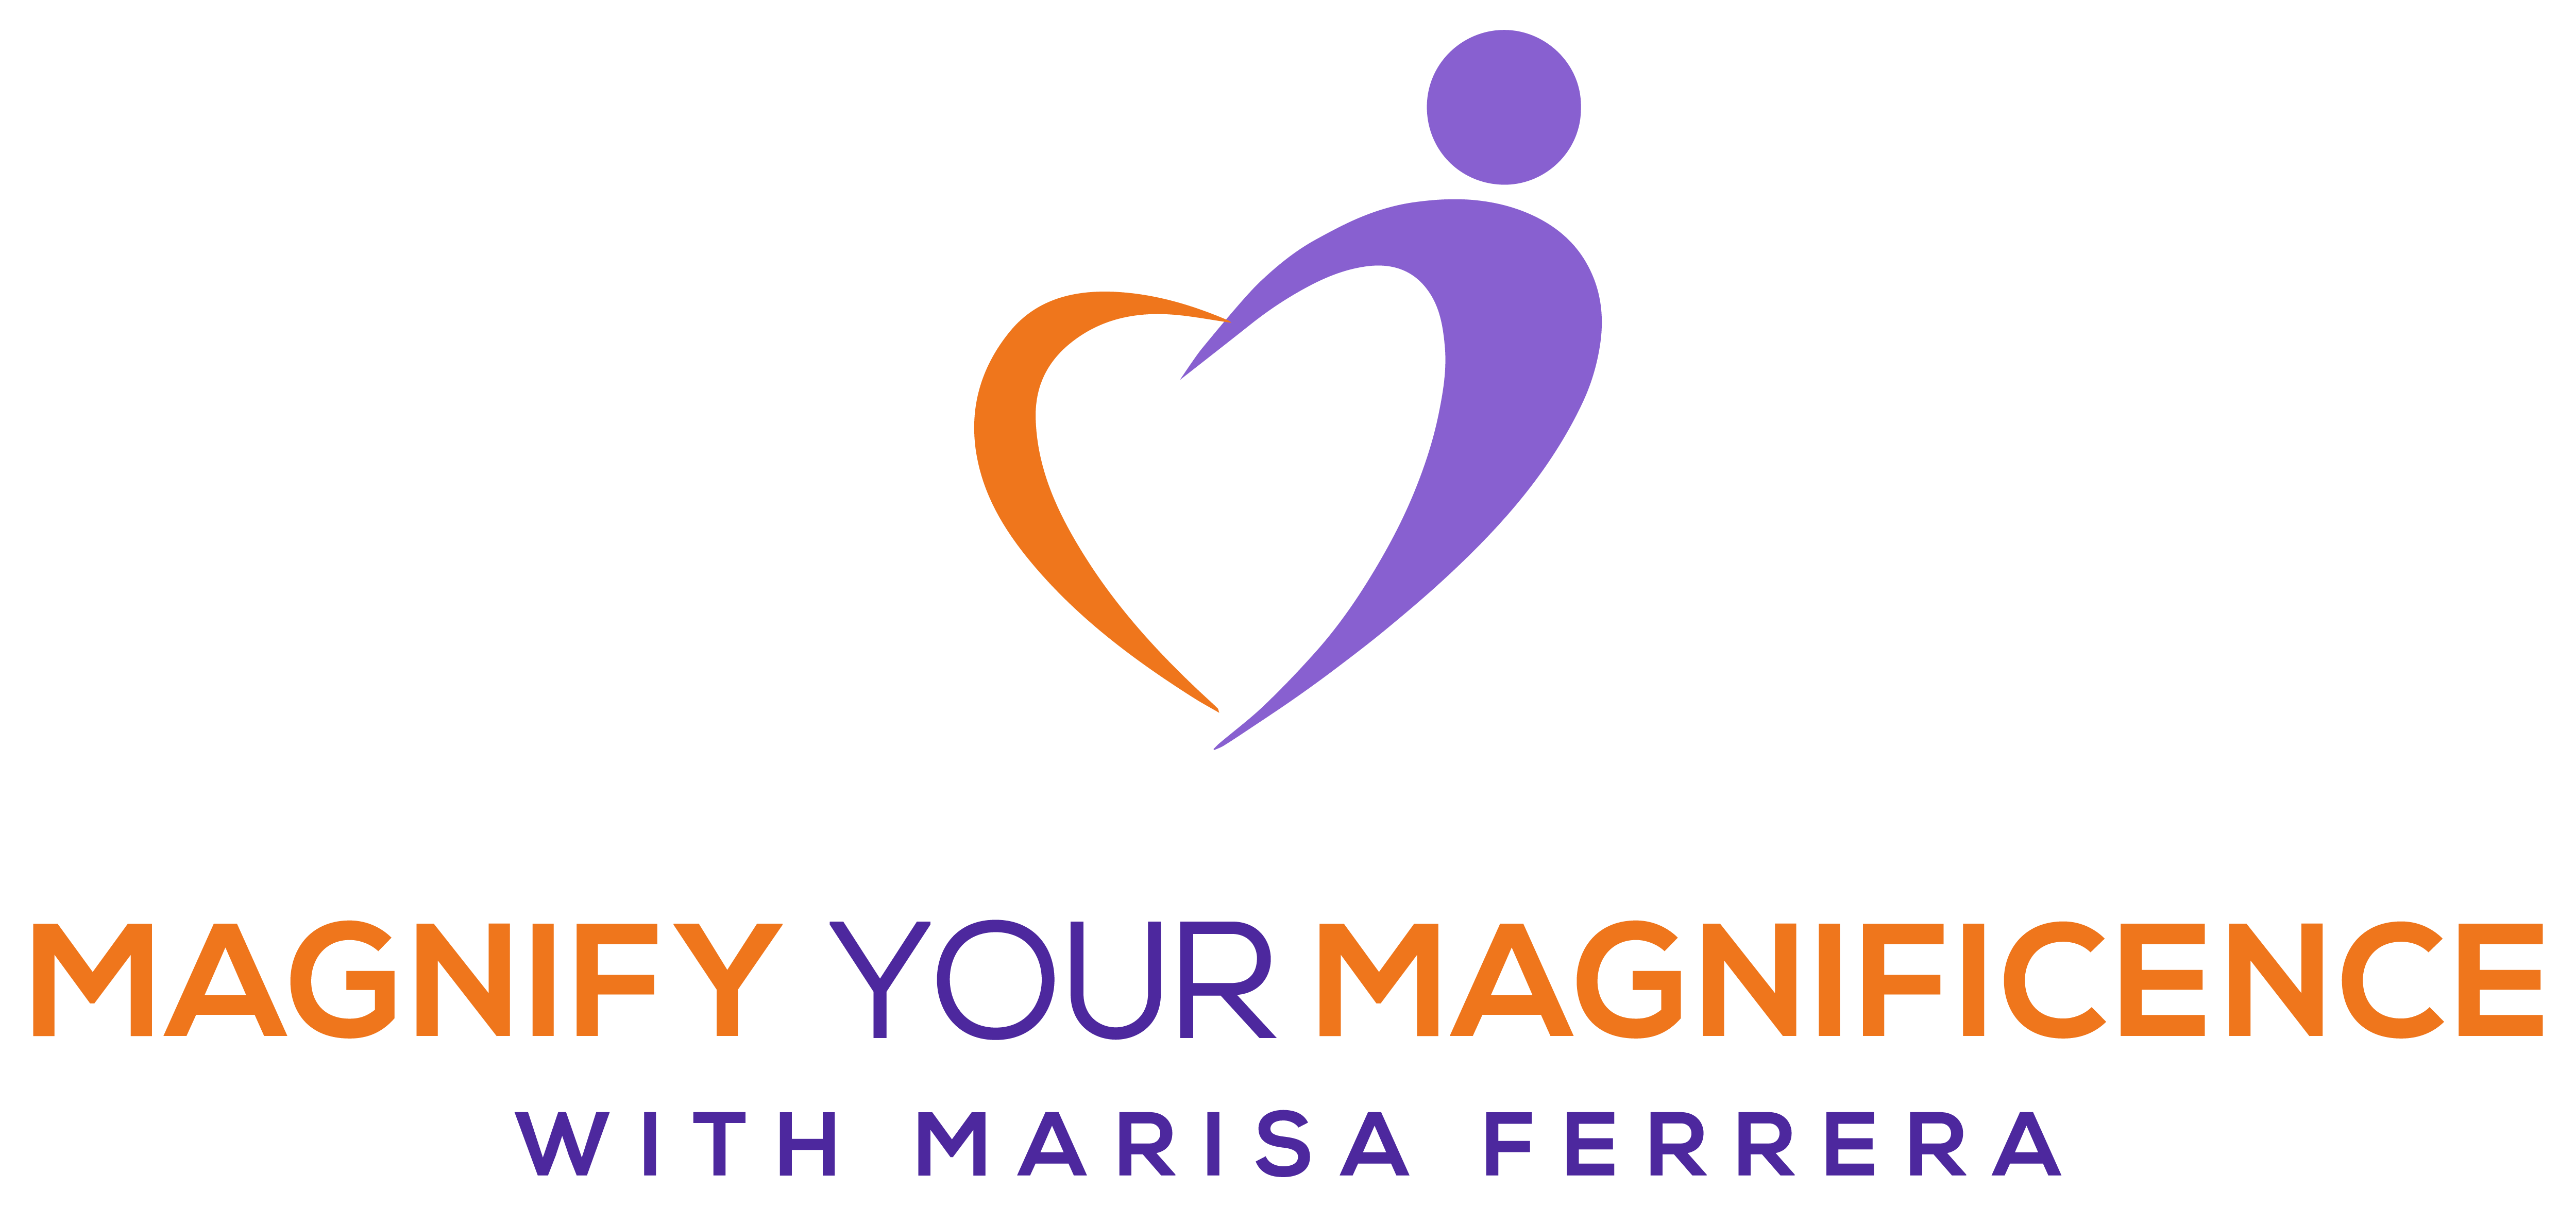 Magnify Your Magnificence